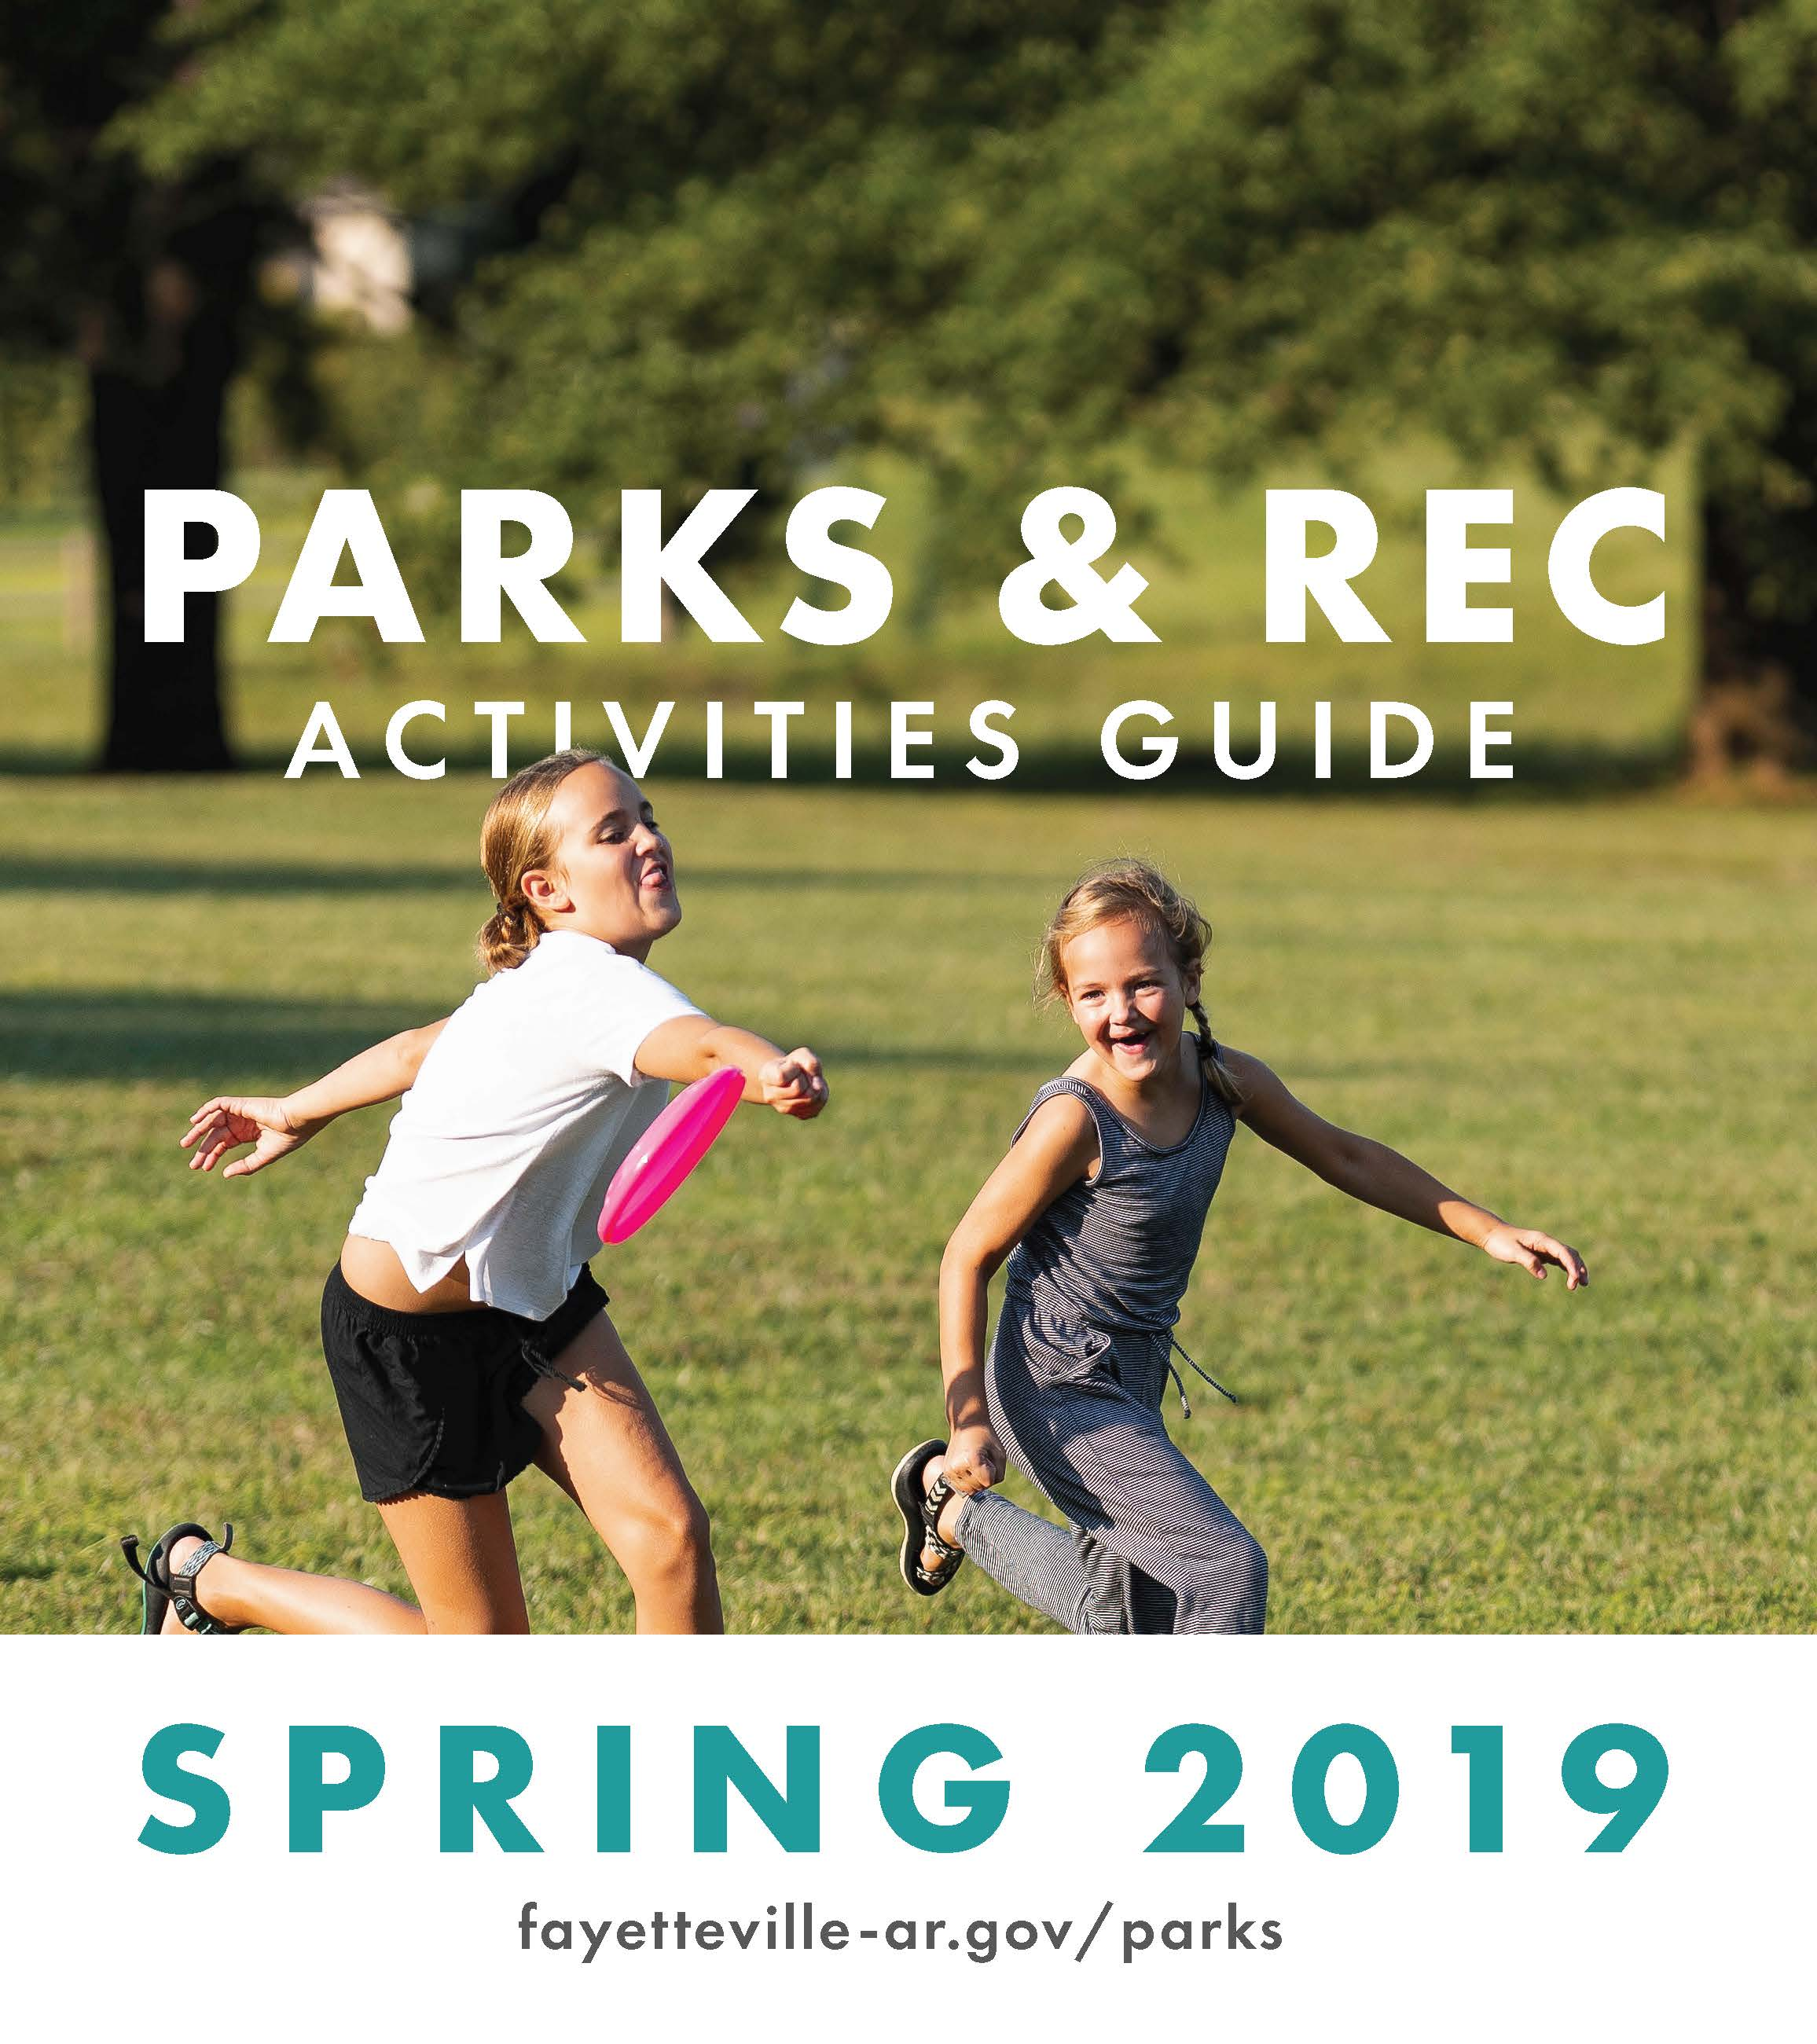 2019 Spring Activities Guide cover